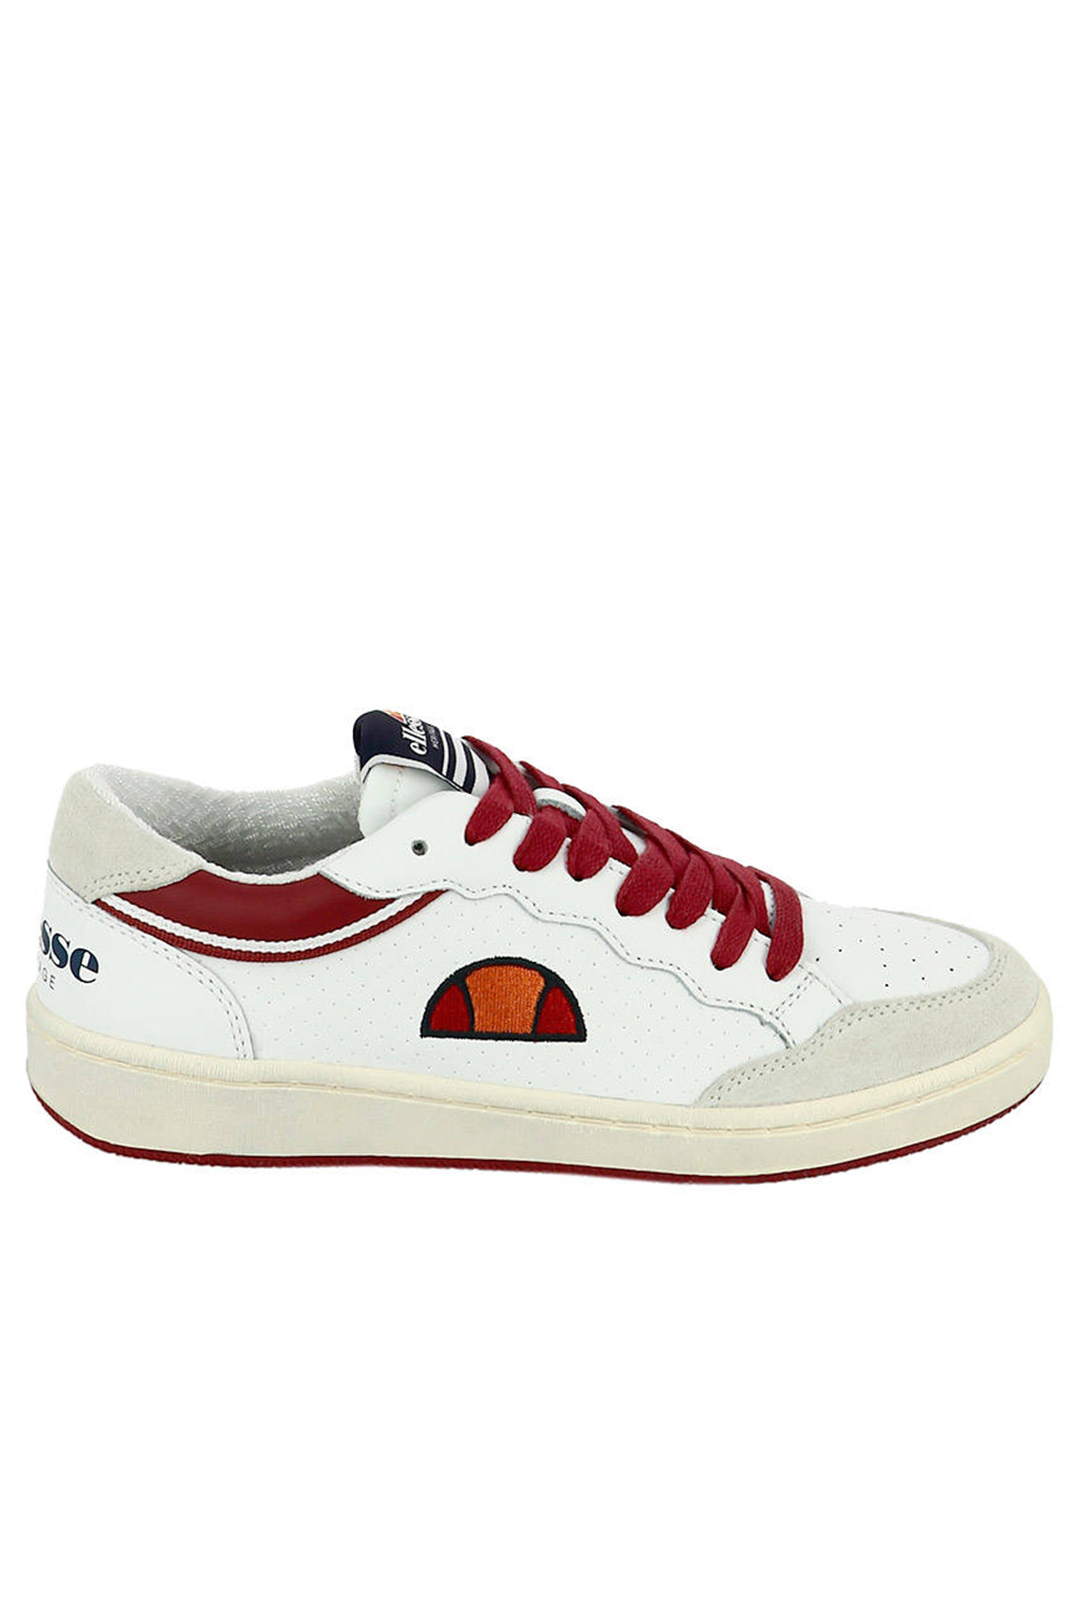 Baskets / Sneakers  Ellesse EL91503 F 02 WHITE RED